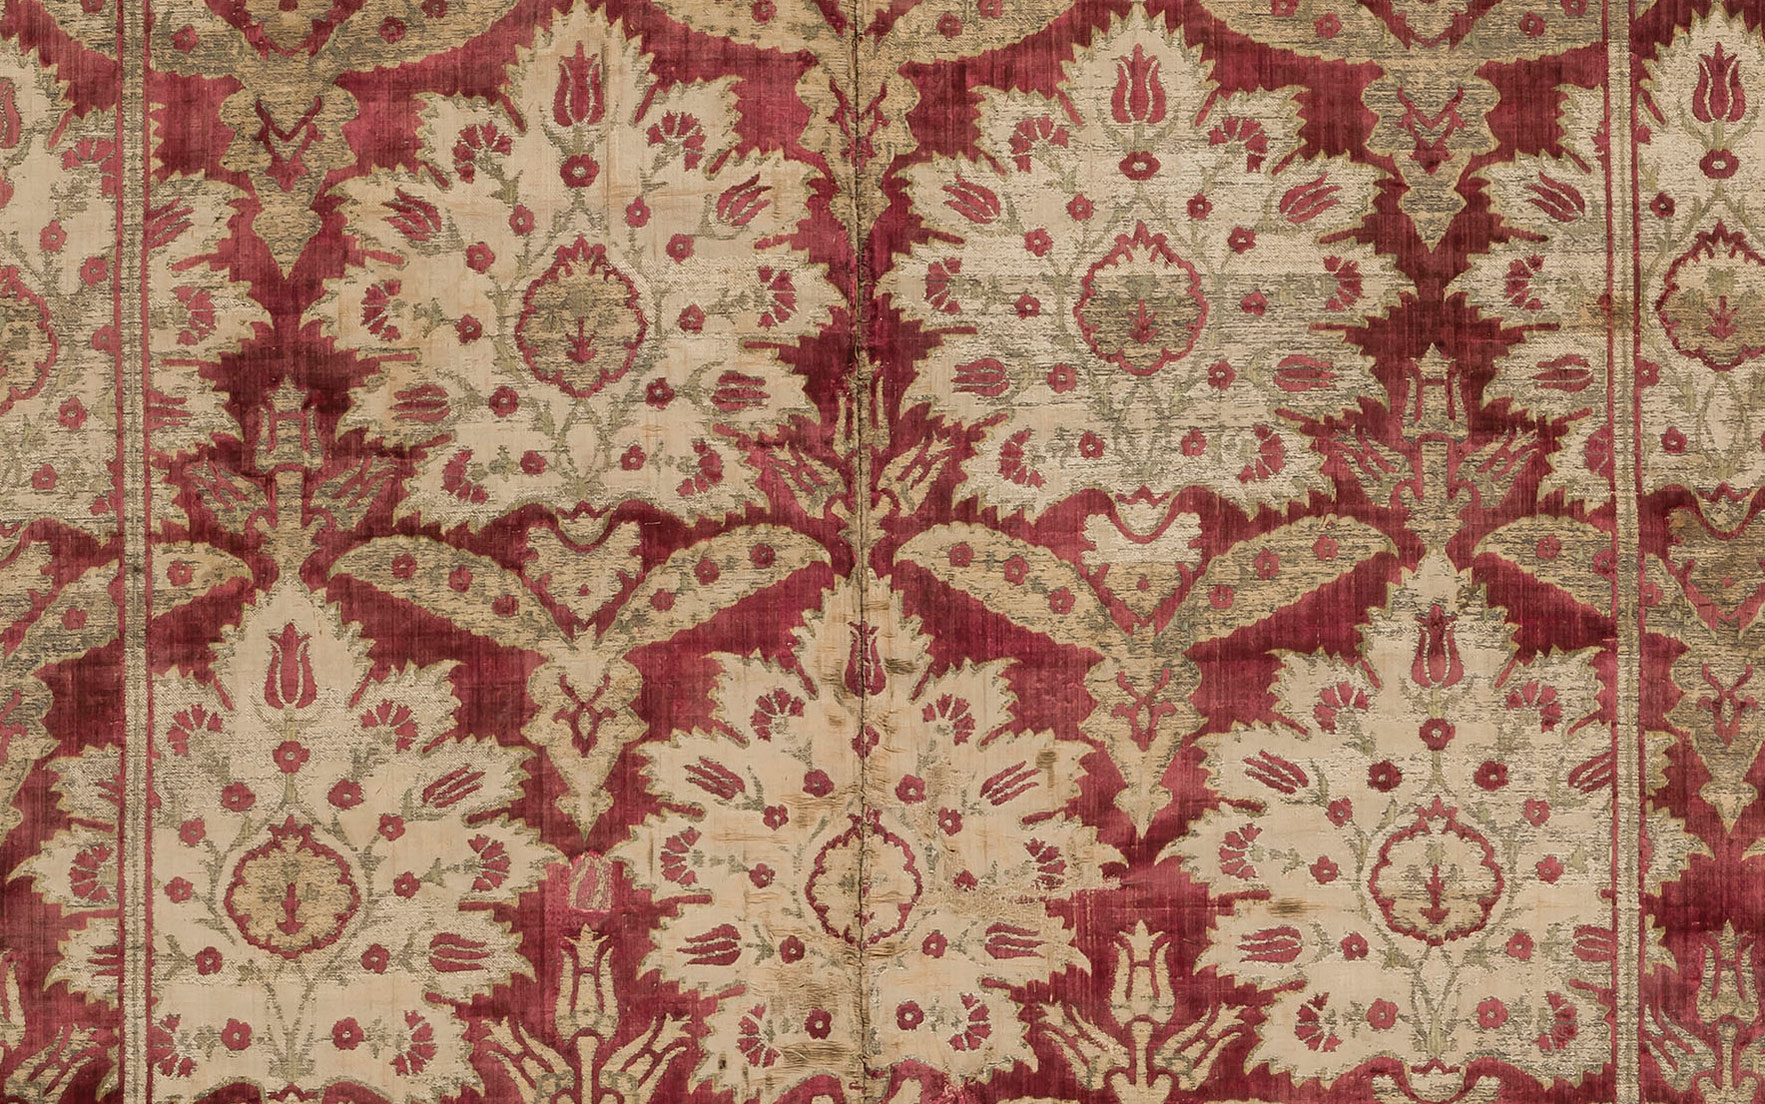 Collecting guide: Ottoman silk